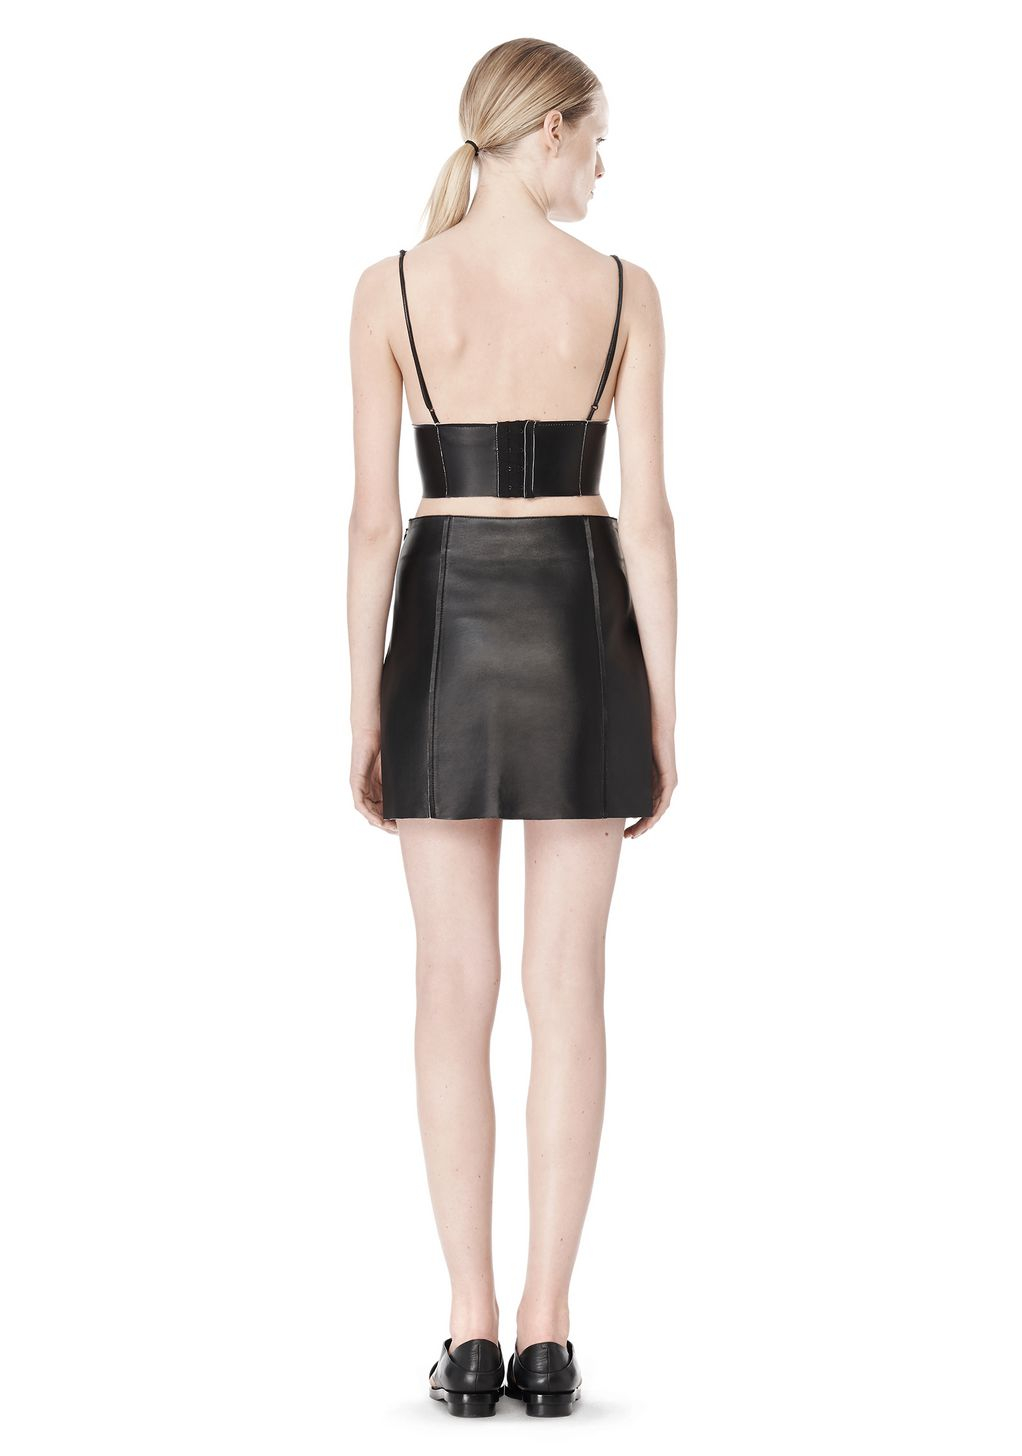 66271cd964033 Lyst - Alexander Wang Raw Edge Triangle Leather Bralette in Black